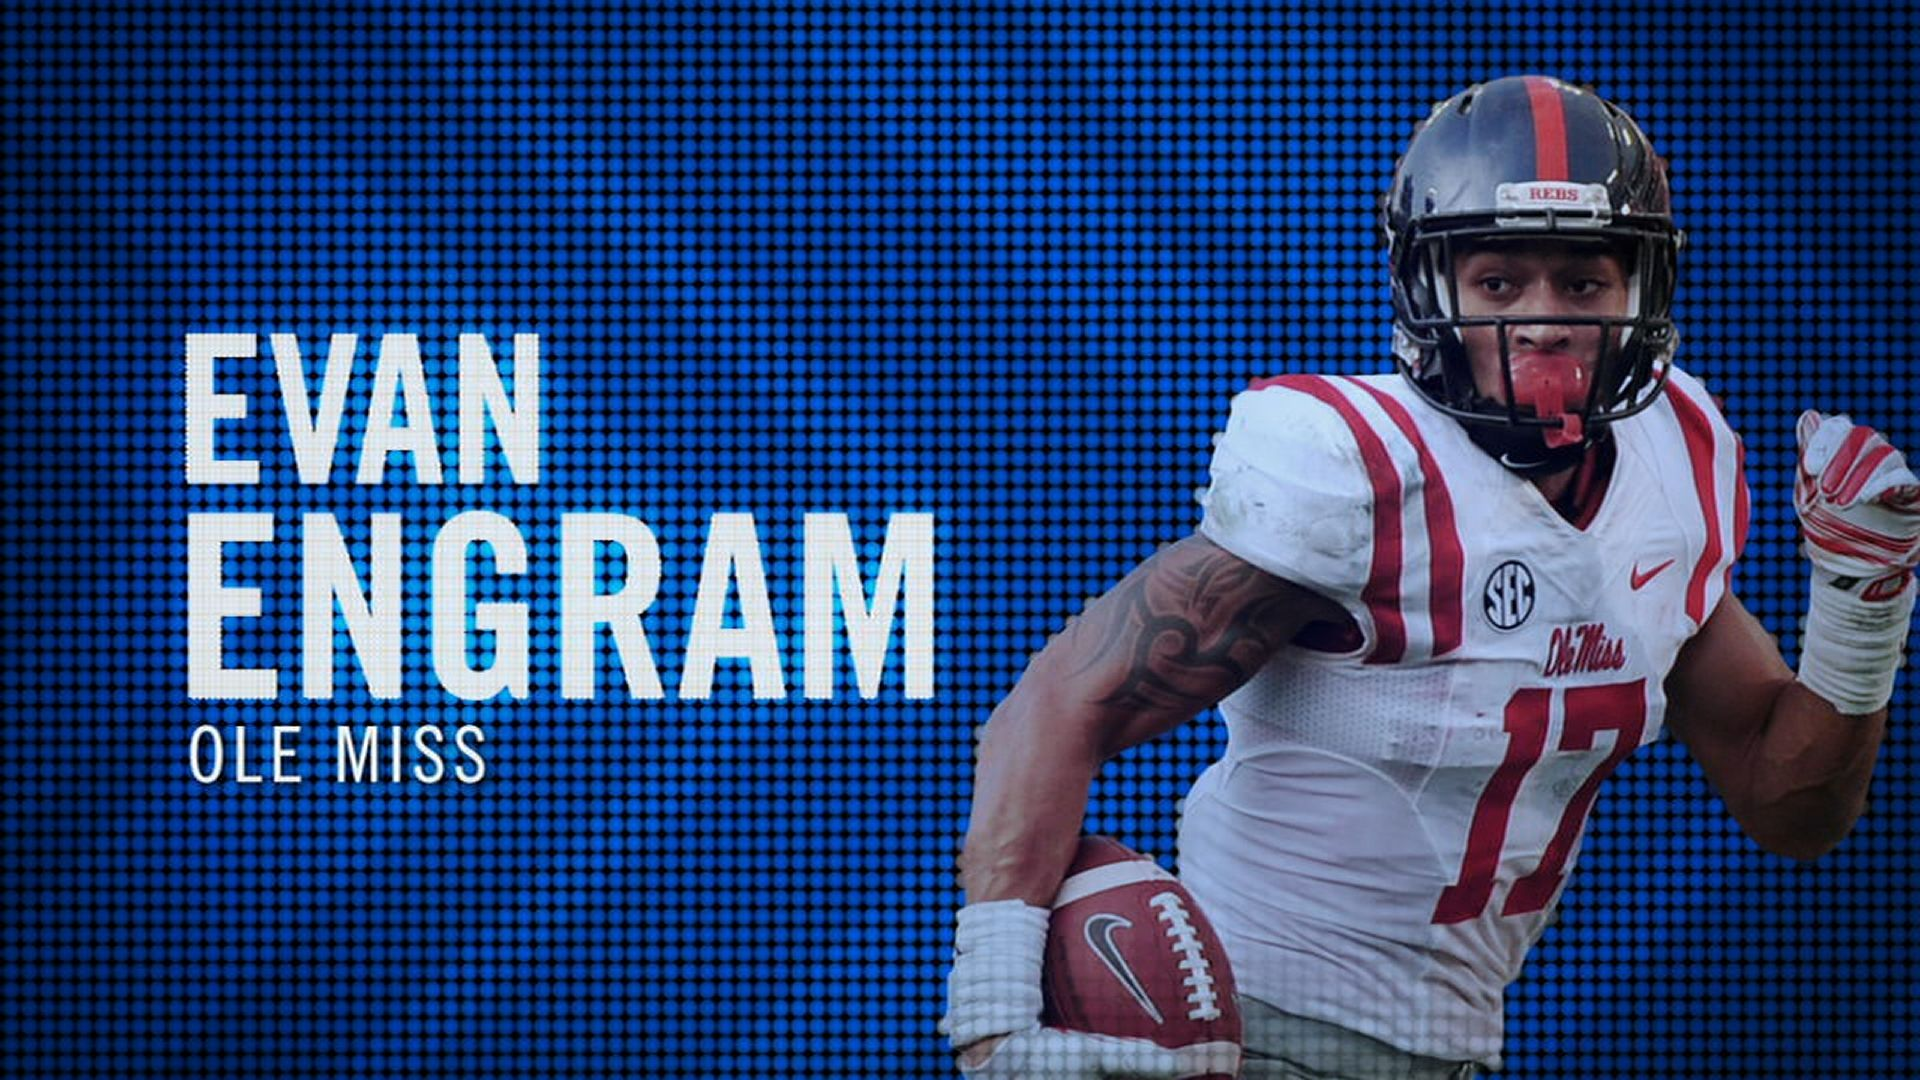 I am the SEC: Ole Miss' Evan Engram